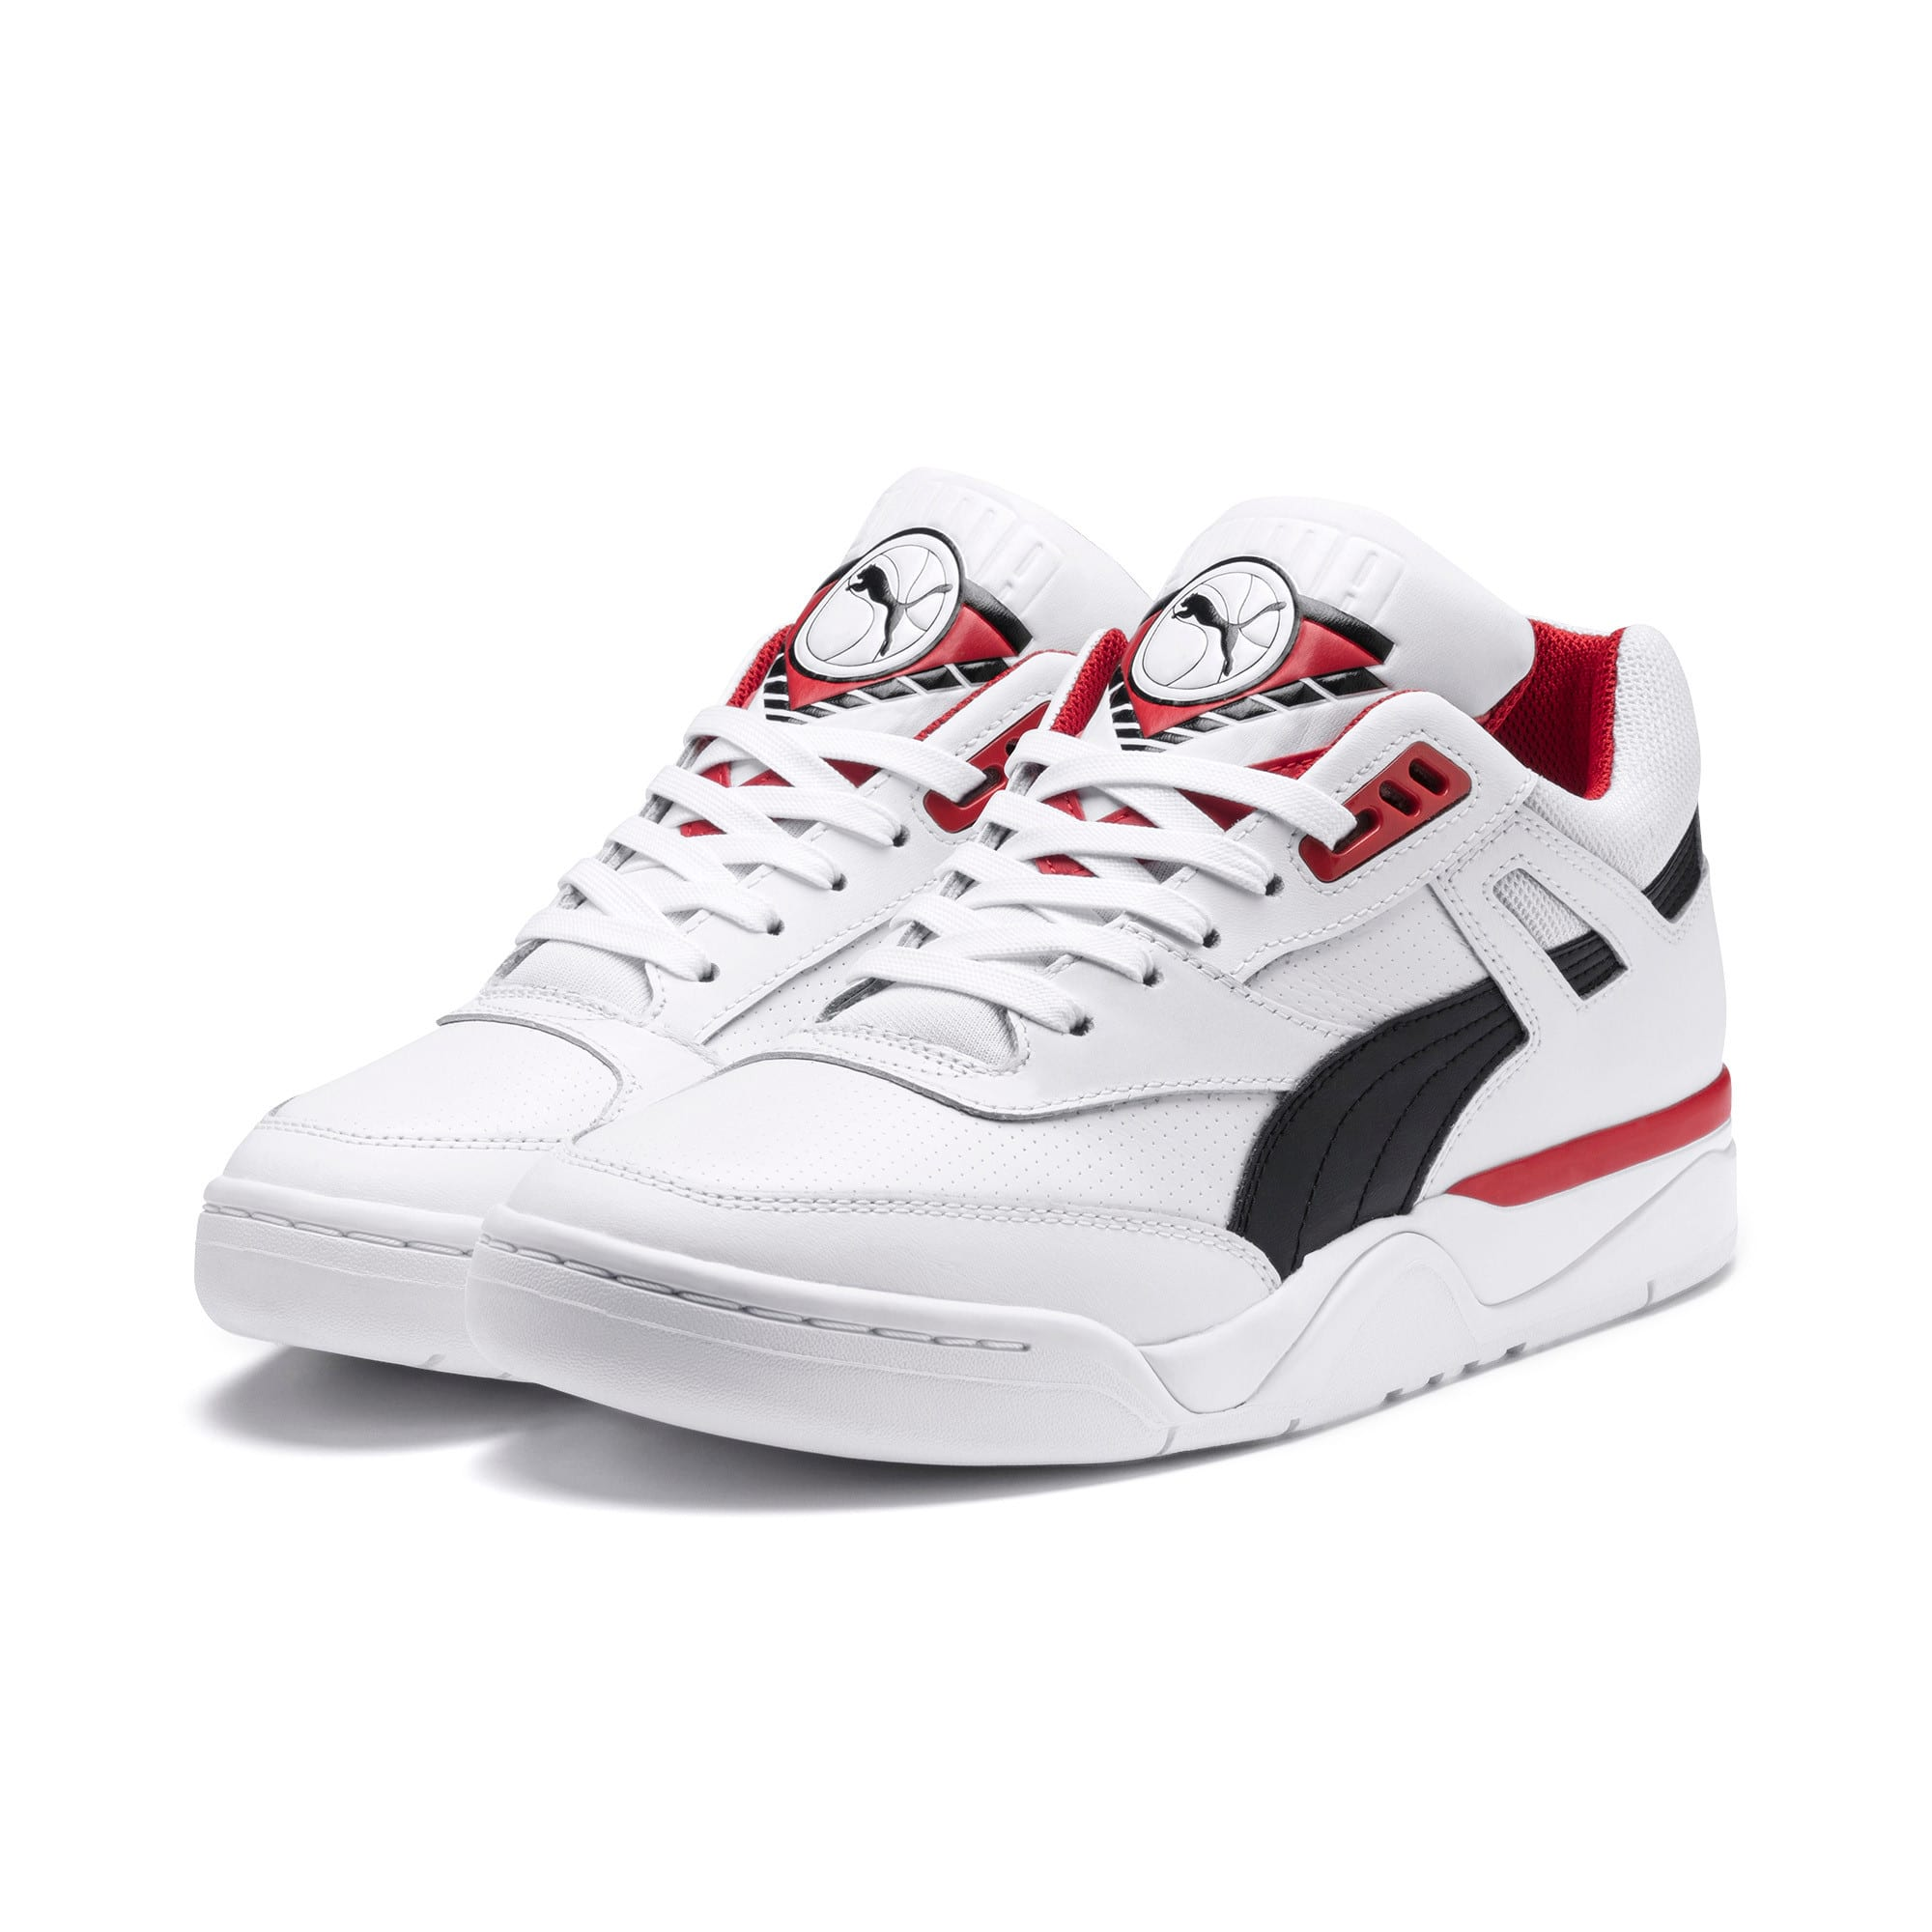 Anteprima 2 di Palace Guard Men's Basketball Trainers, Puma White-Puma Black-red, medio